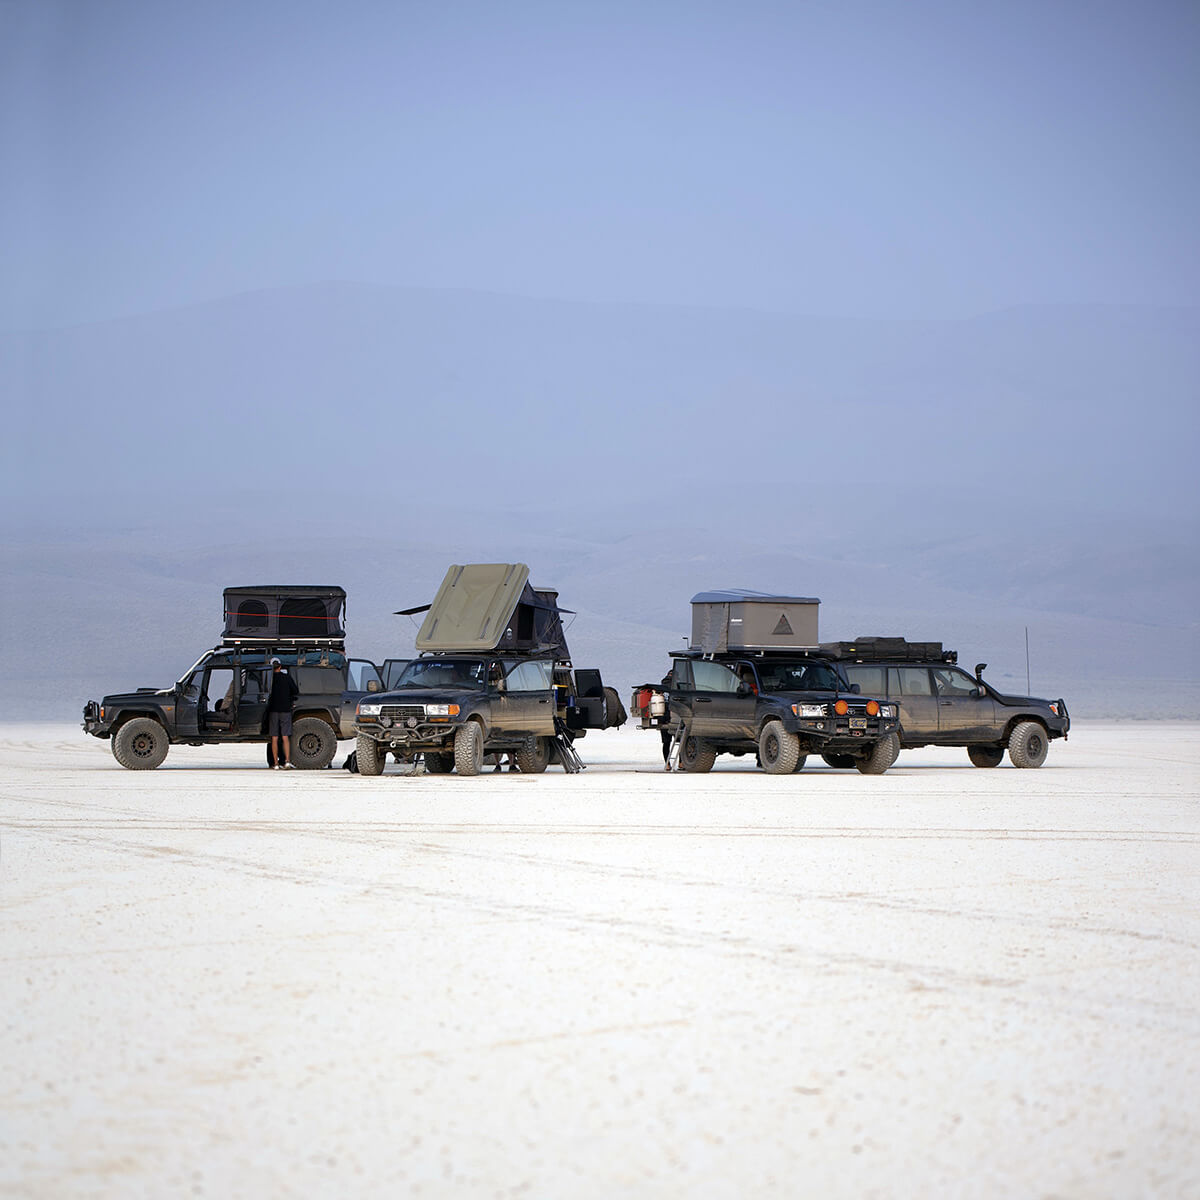 Toyota Land cruiser off-road camping